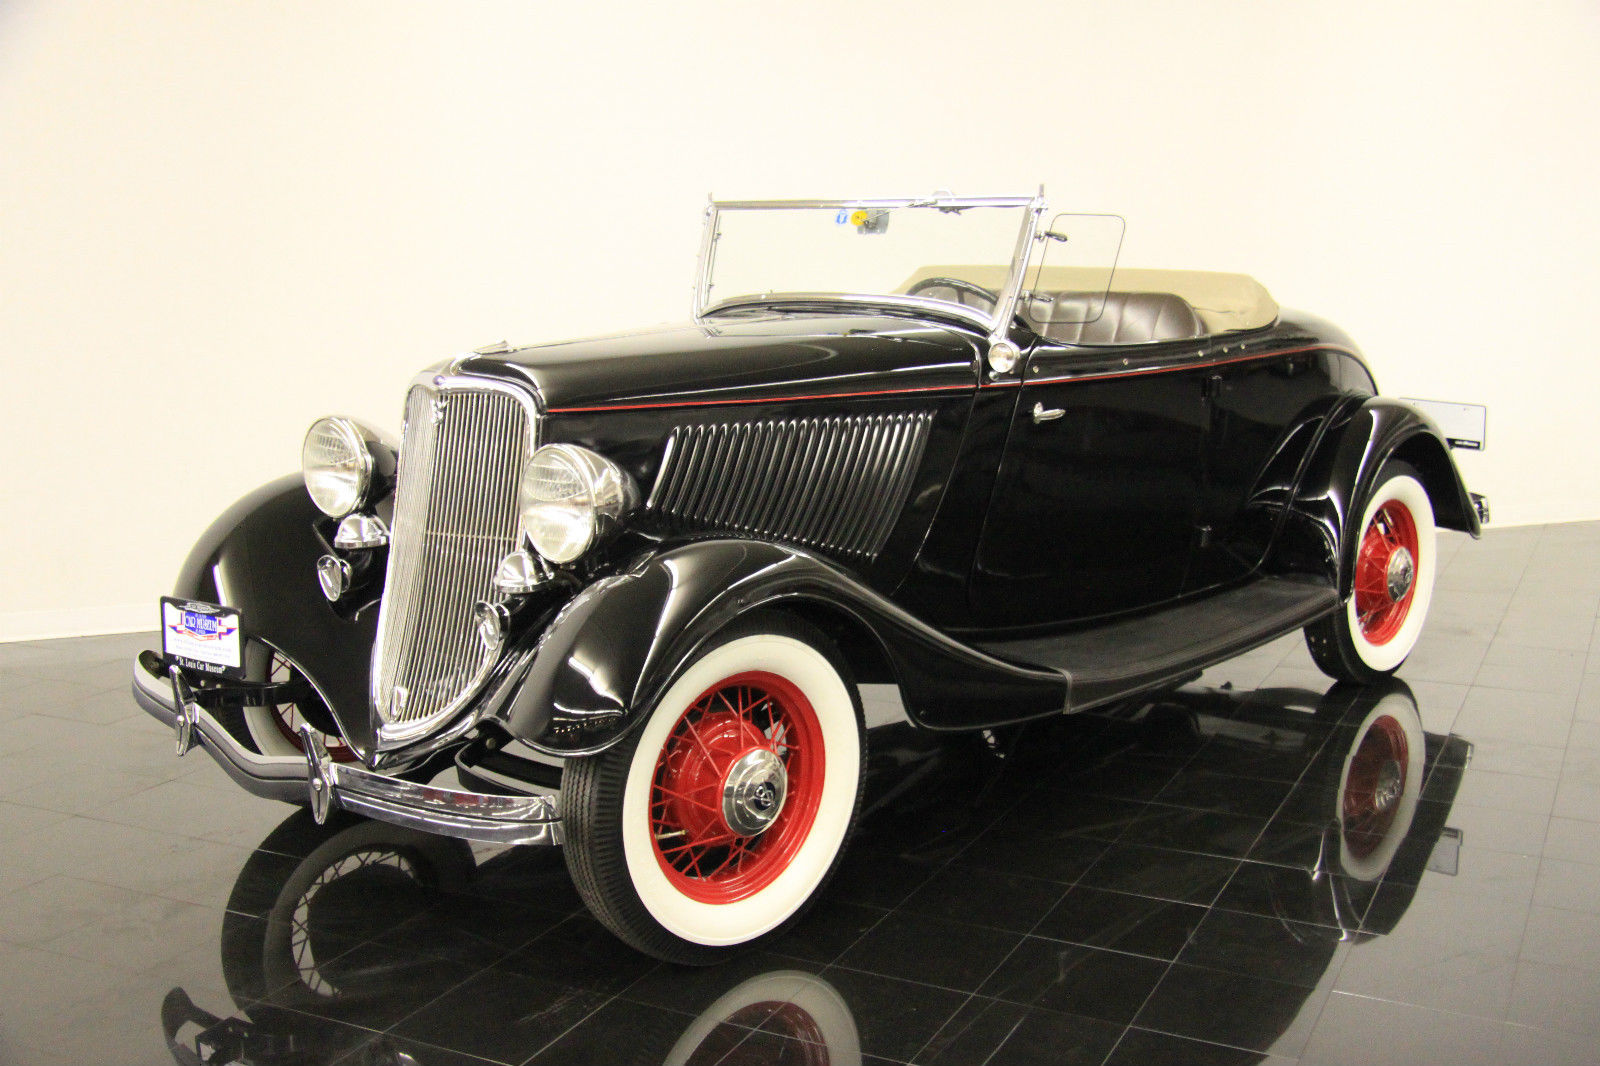 Totaled Cars For Sale >> 1933 Ford Model 40 Deluxe Rumble Seat Roadster for sale